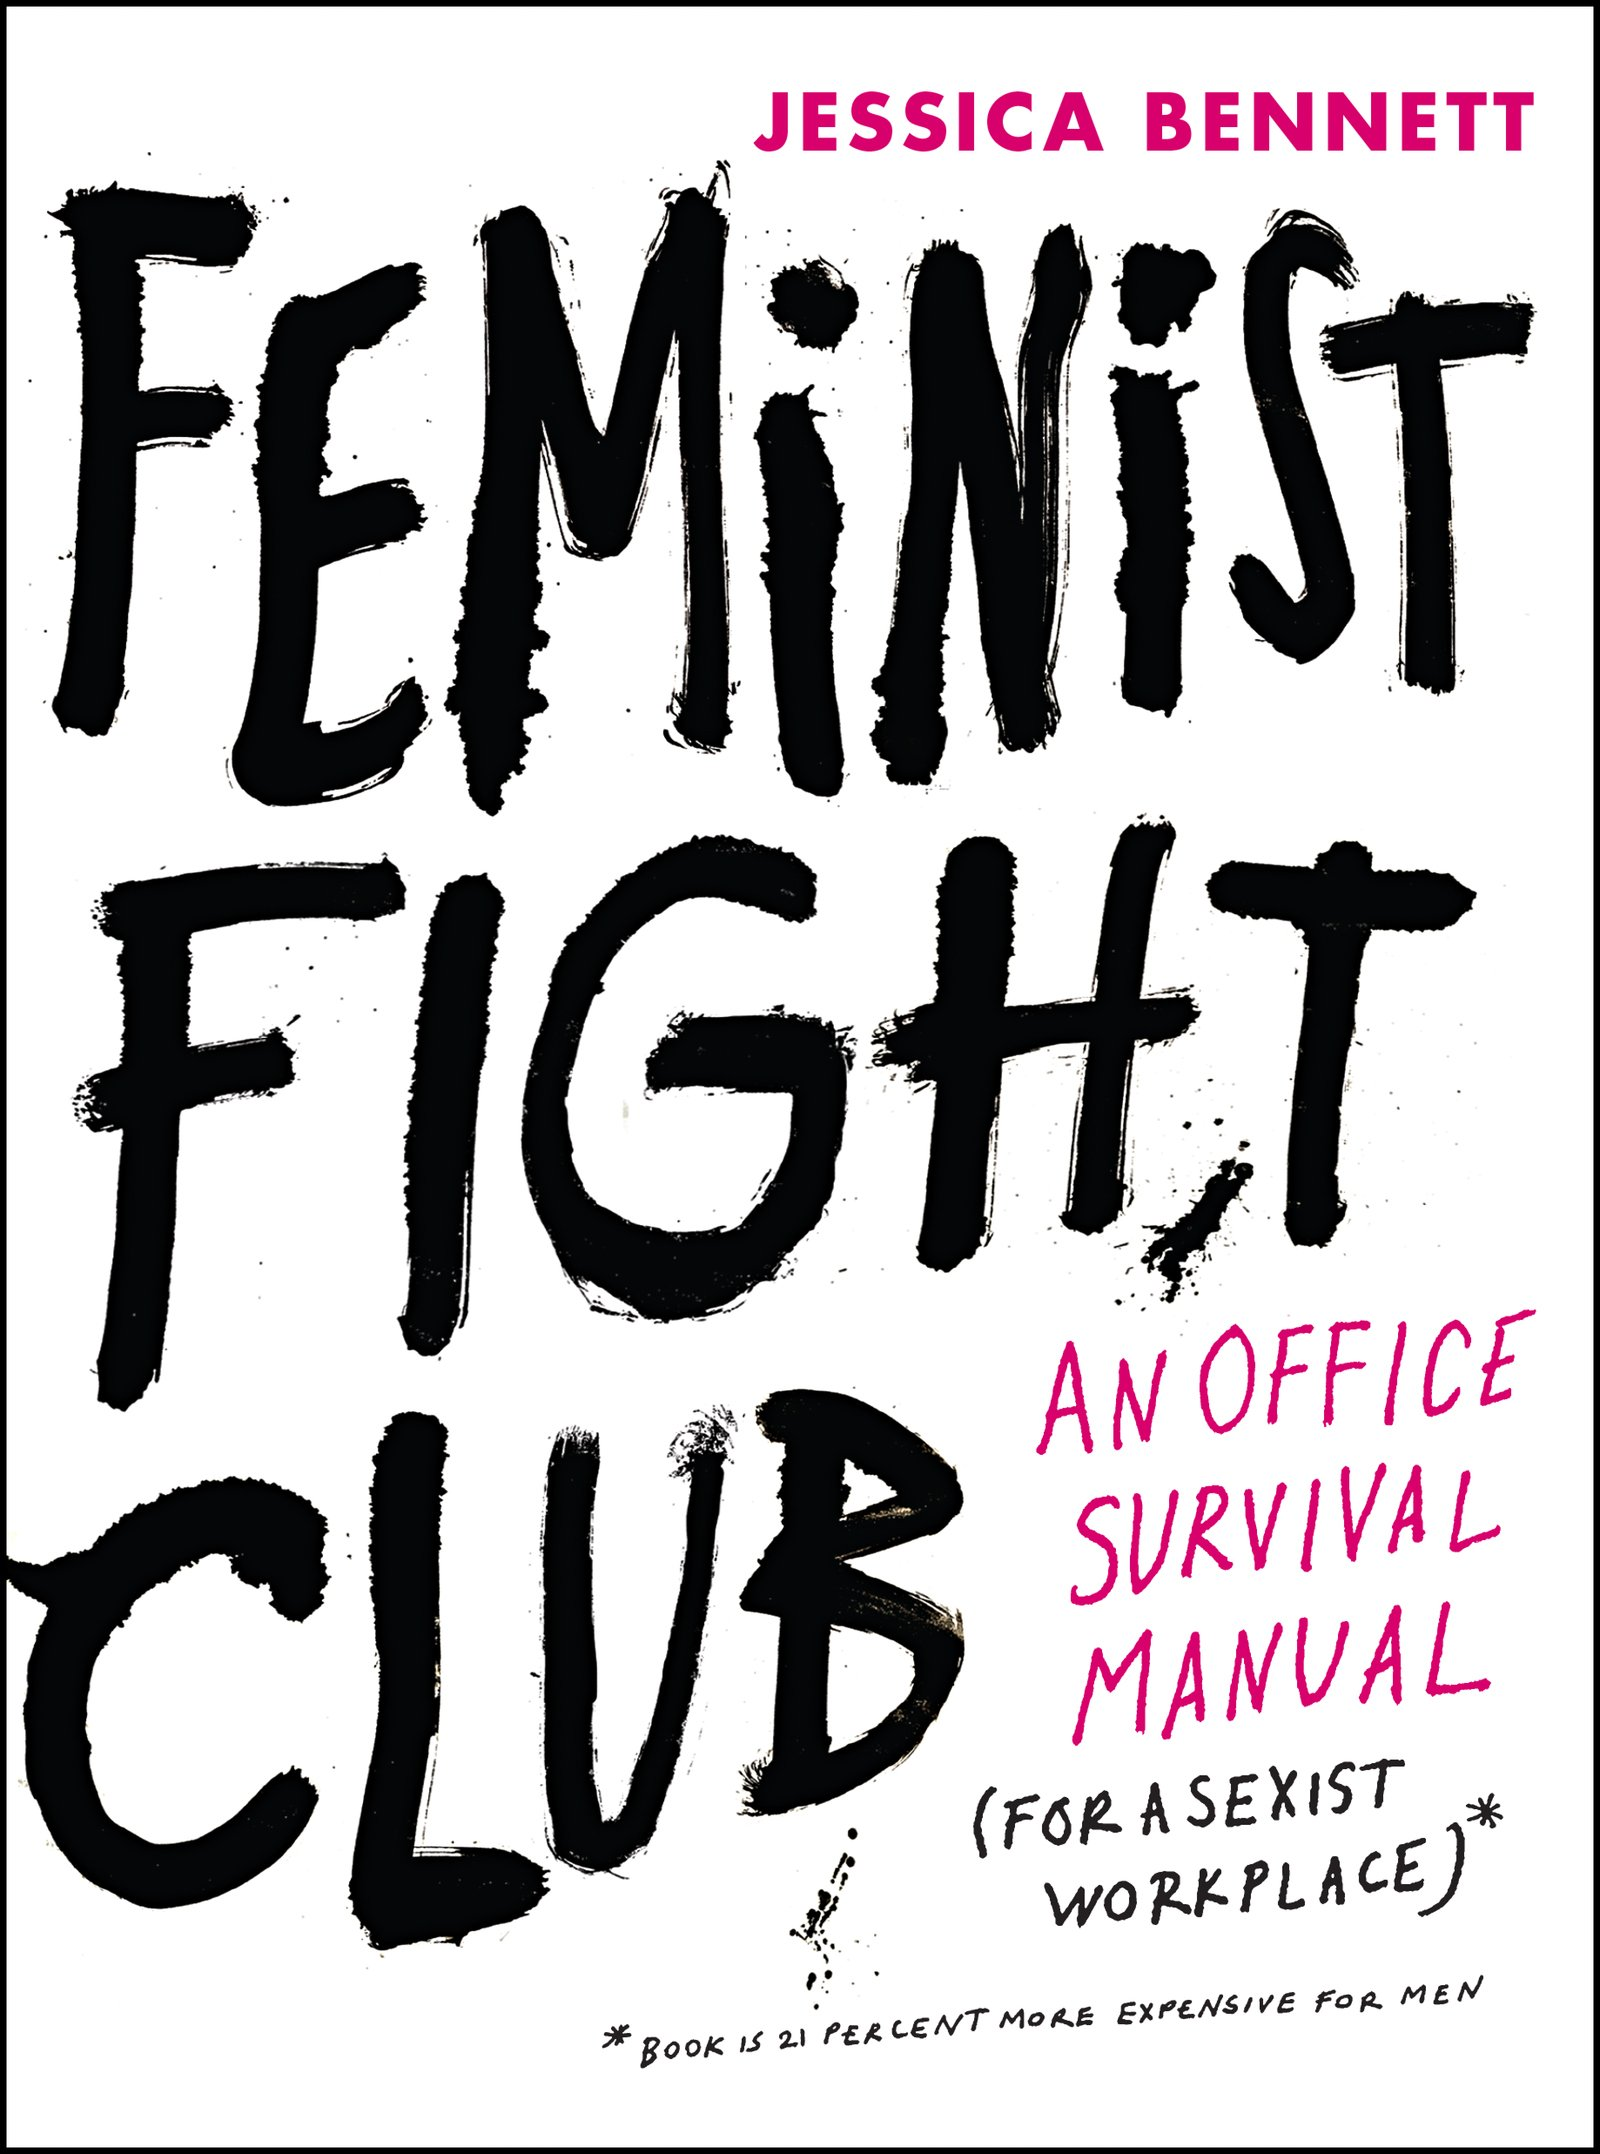 Feminist Fight Club:An Office Survival Manual for a Sexist Workplace